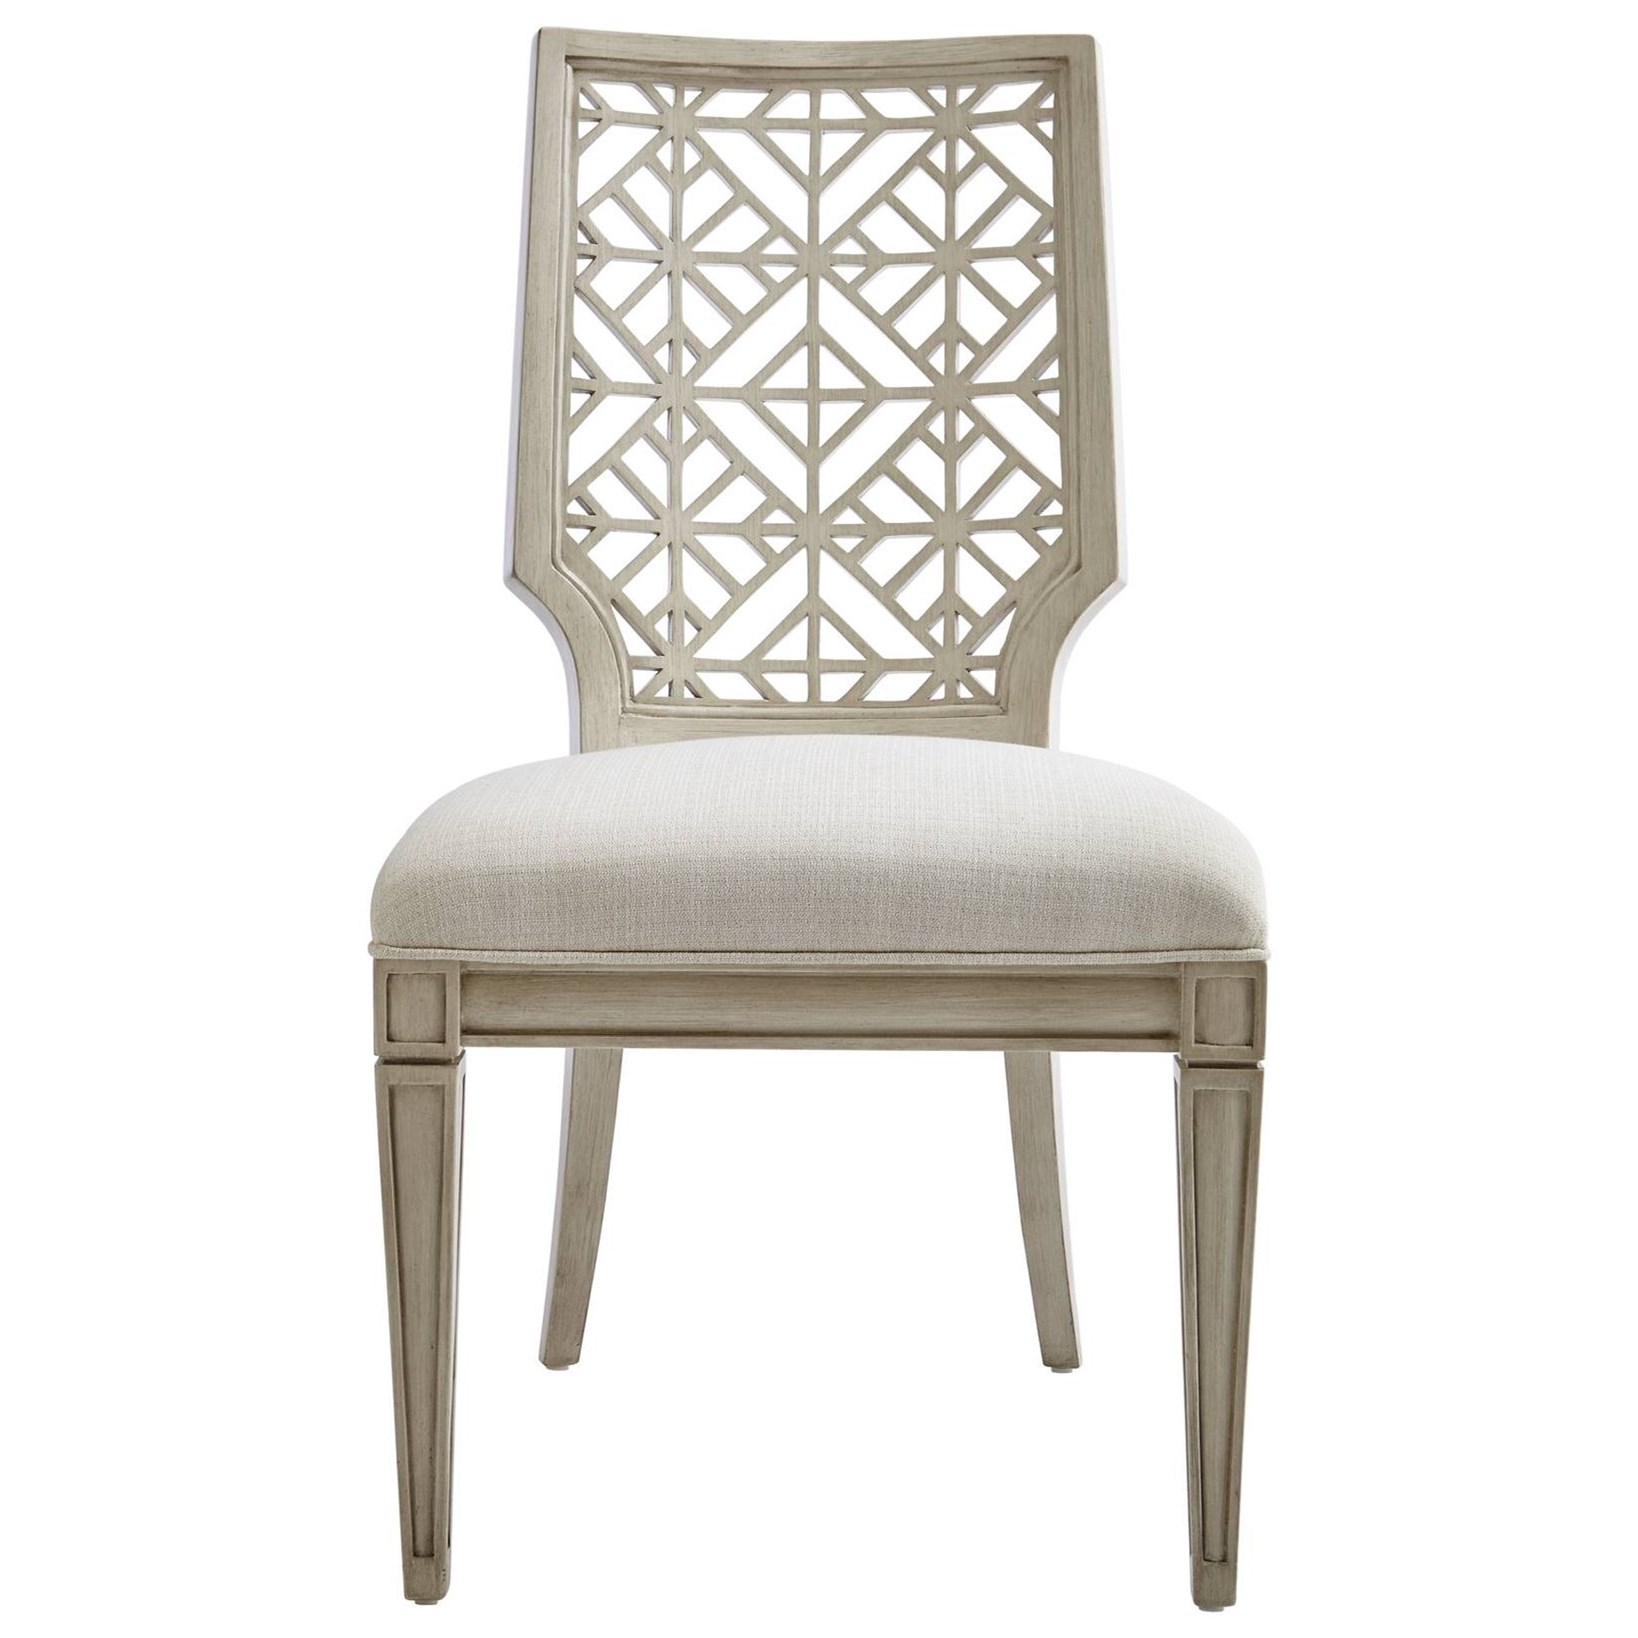 Stanley Furniture Coastal Living Oasis Catalina Side Chair - Item Number: 527-51-60